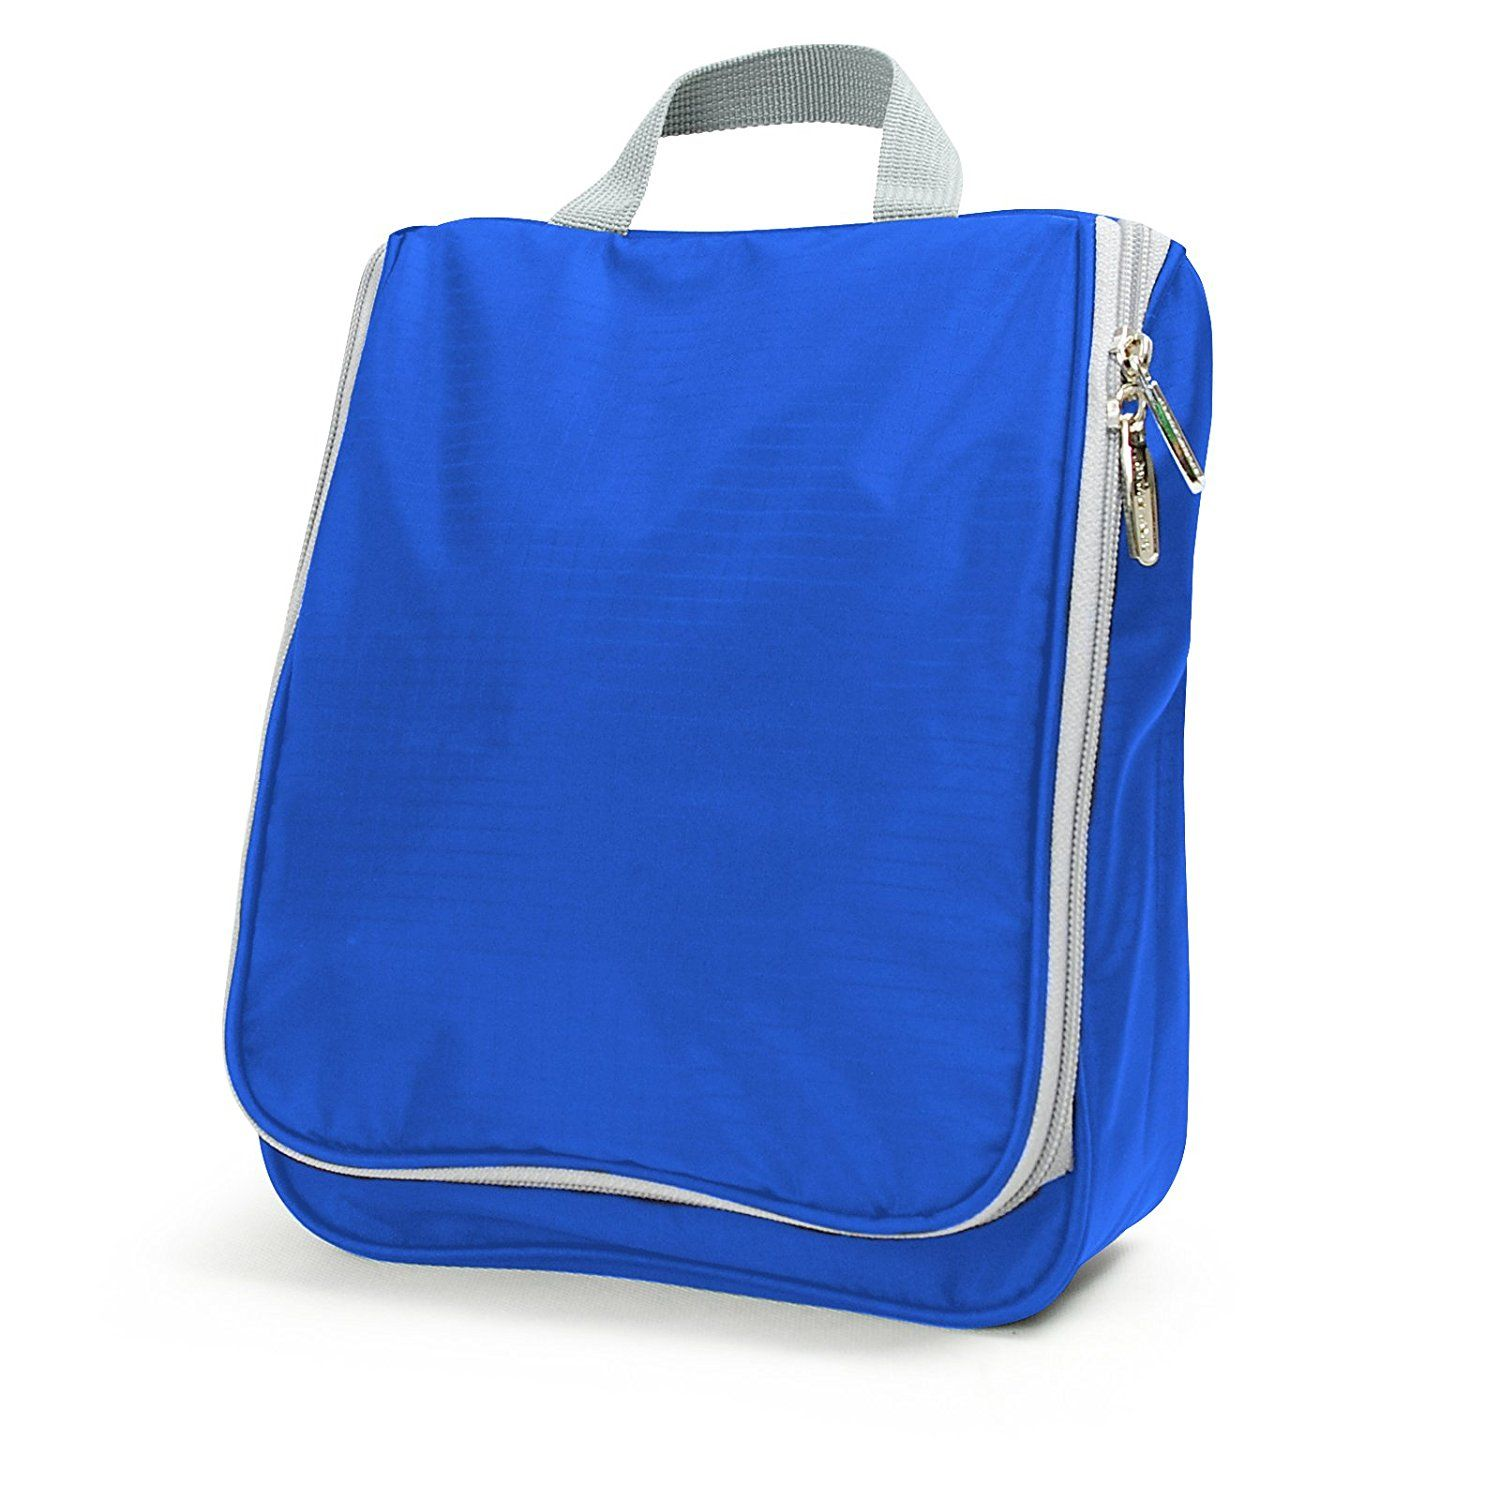 Lavievert Toiletry Bag / Portable Travel Organizer / Household Storage Pack / Bathroom Makeup or Shaving Kit with Hanging for Business, Vacation, Household - Blue -- You can get more details by clicking on the image.